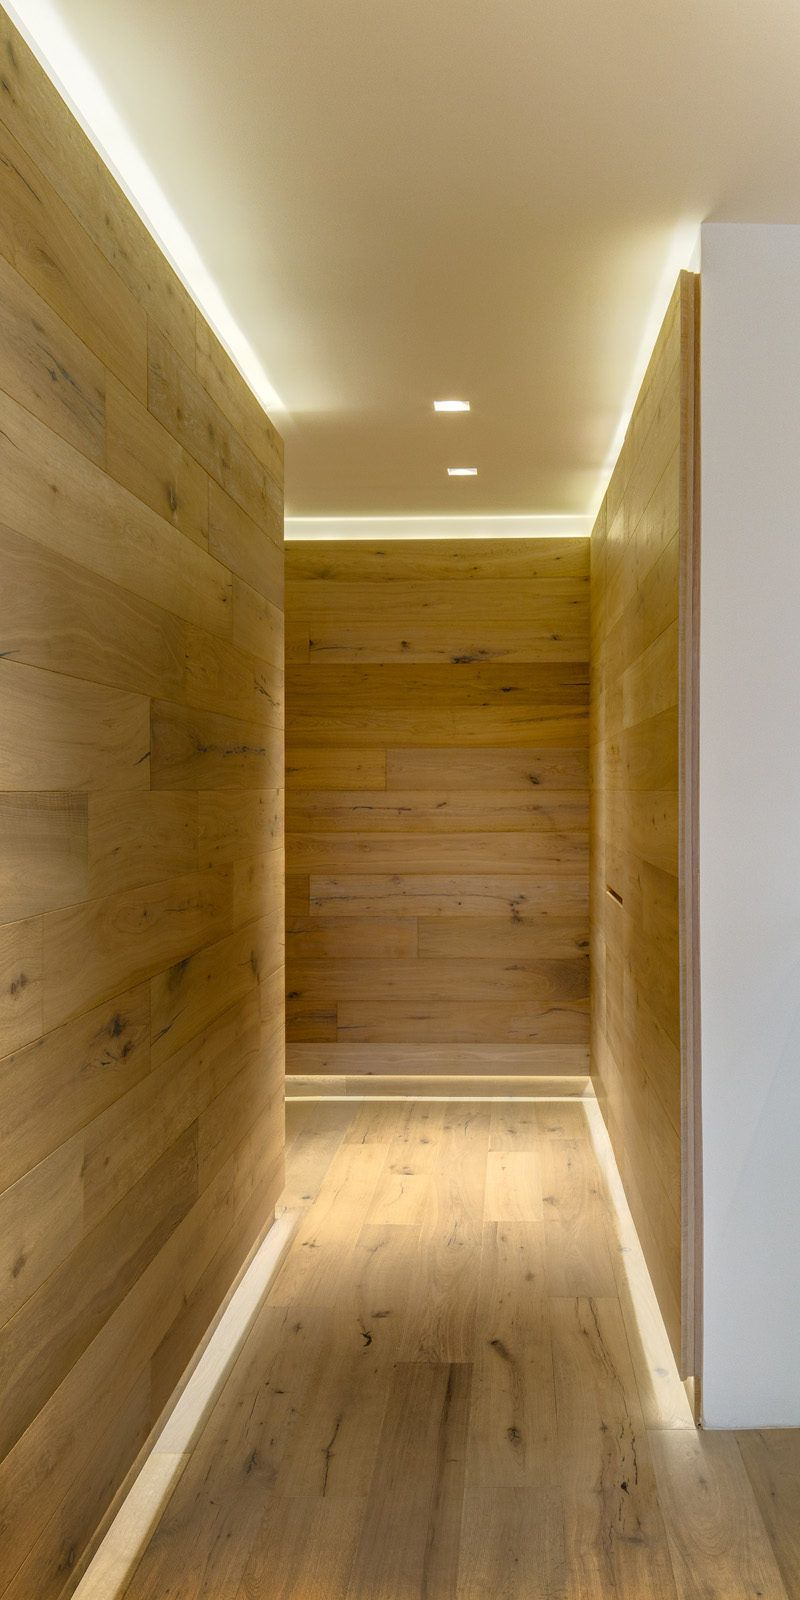 Excellent example of indirect lighting